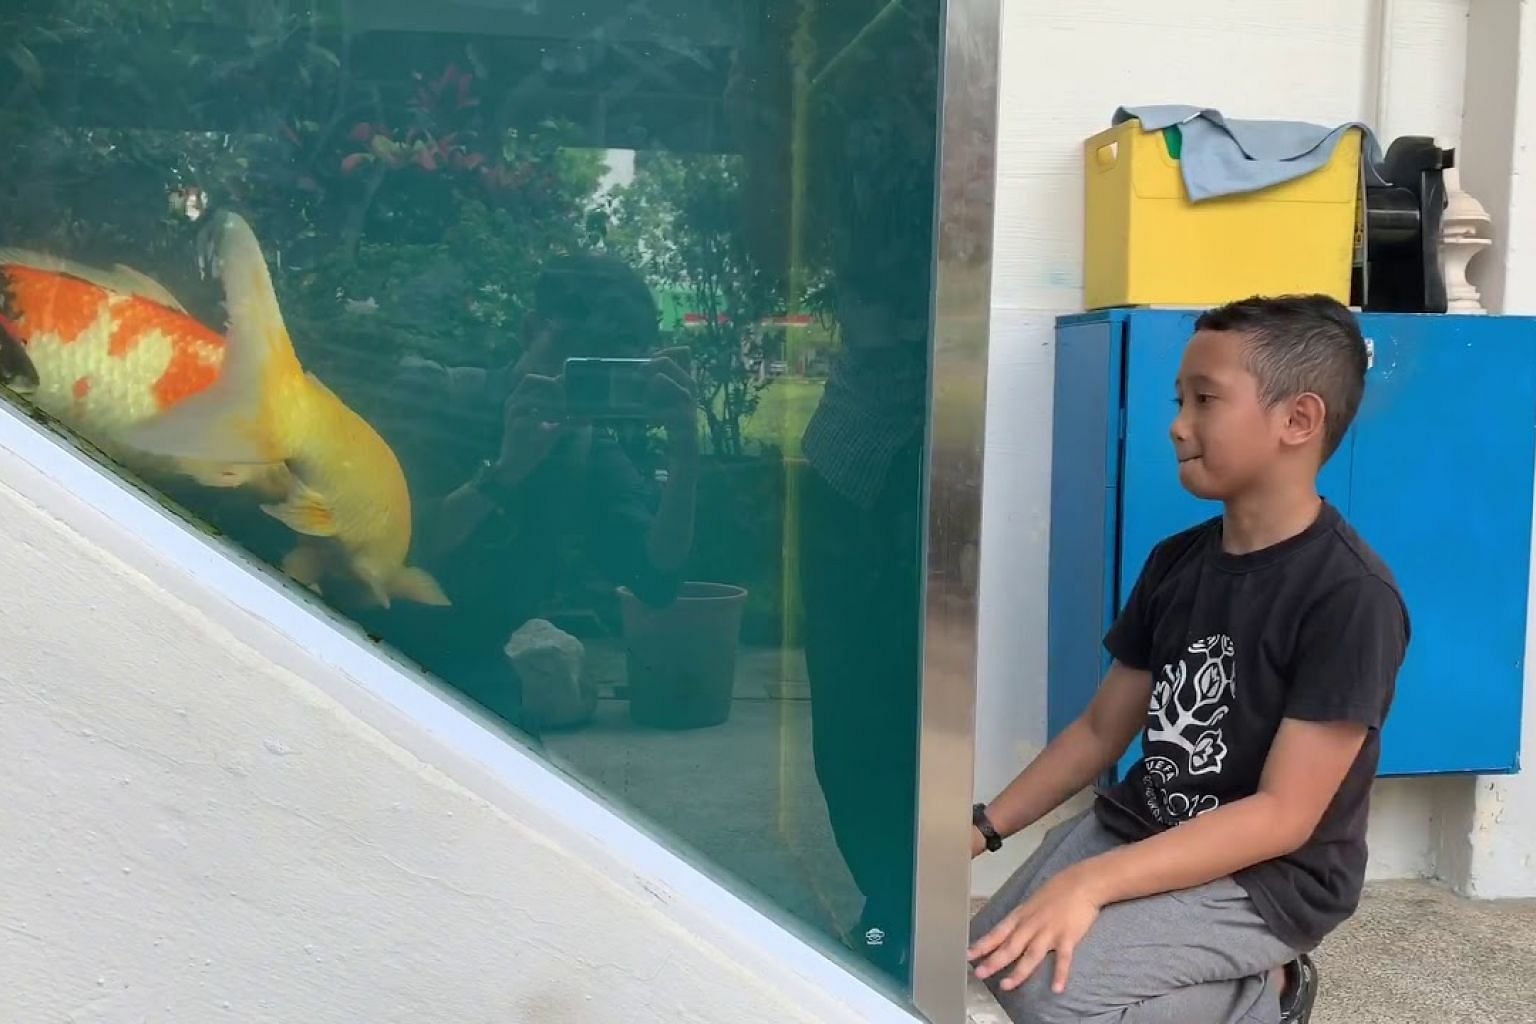 HDB rejects owner's appeal to keep unusual koi fish tank outside Tampines flat